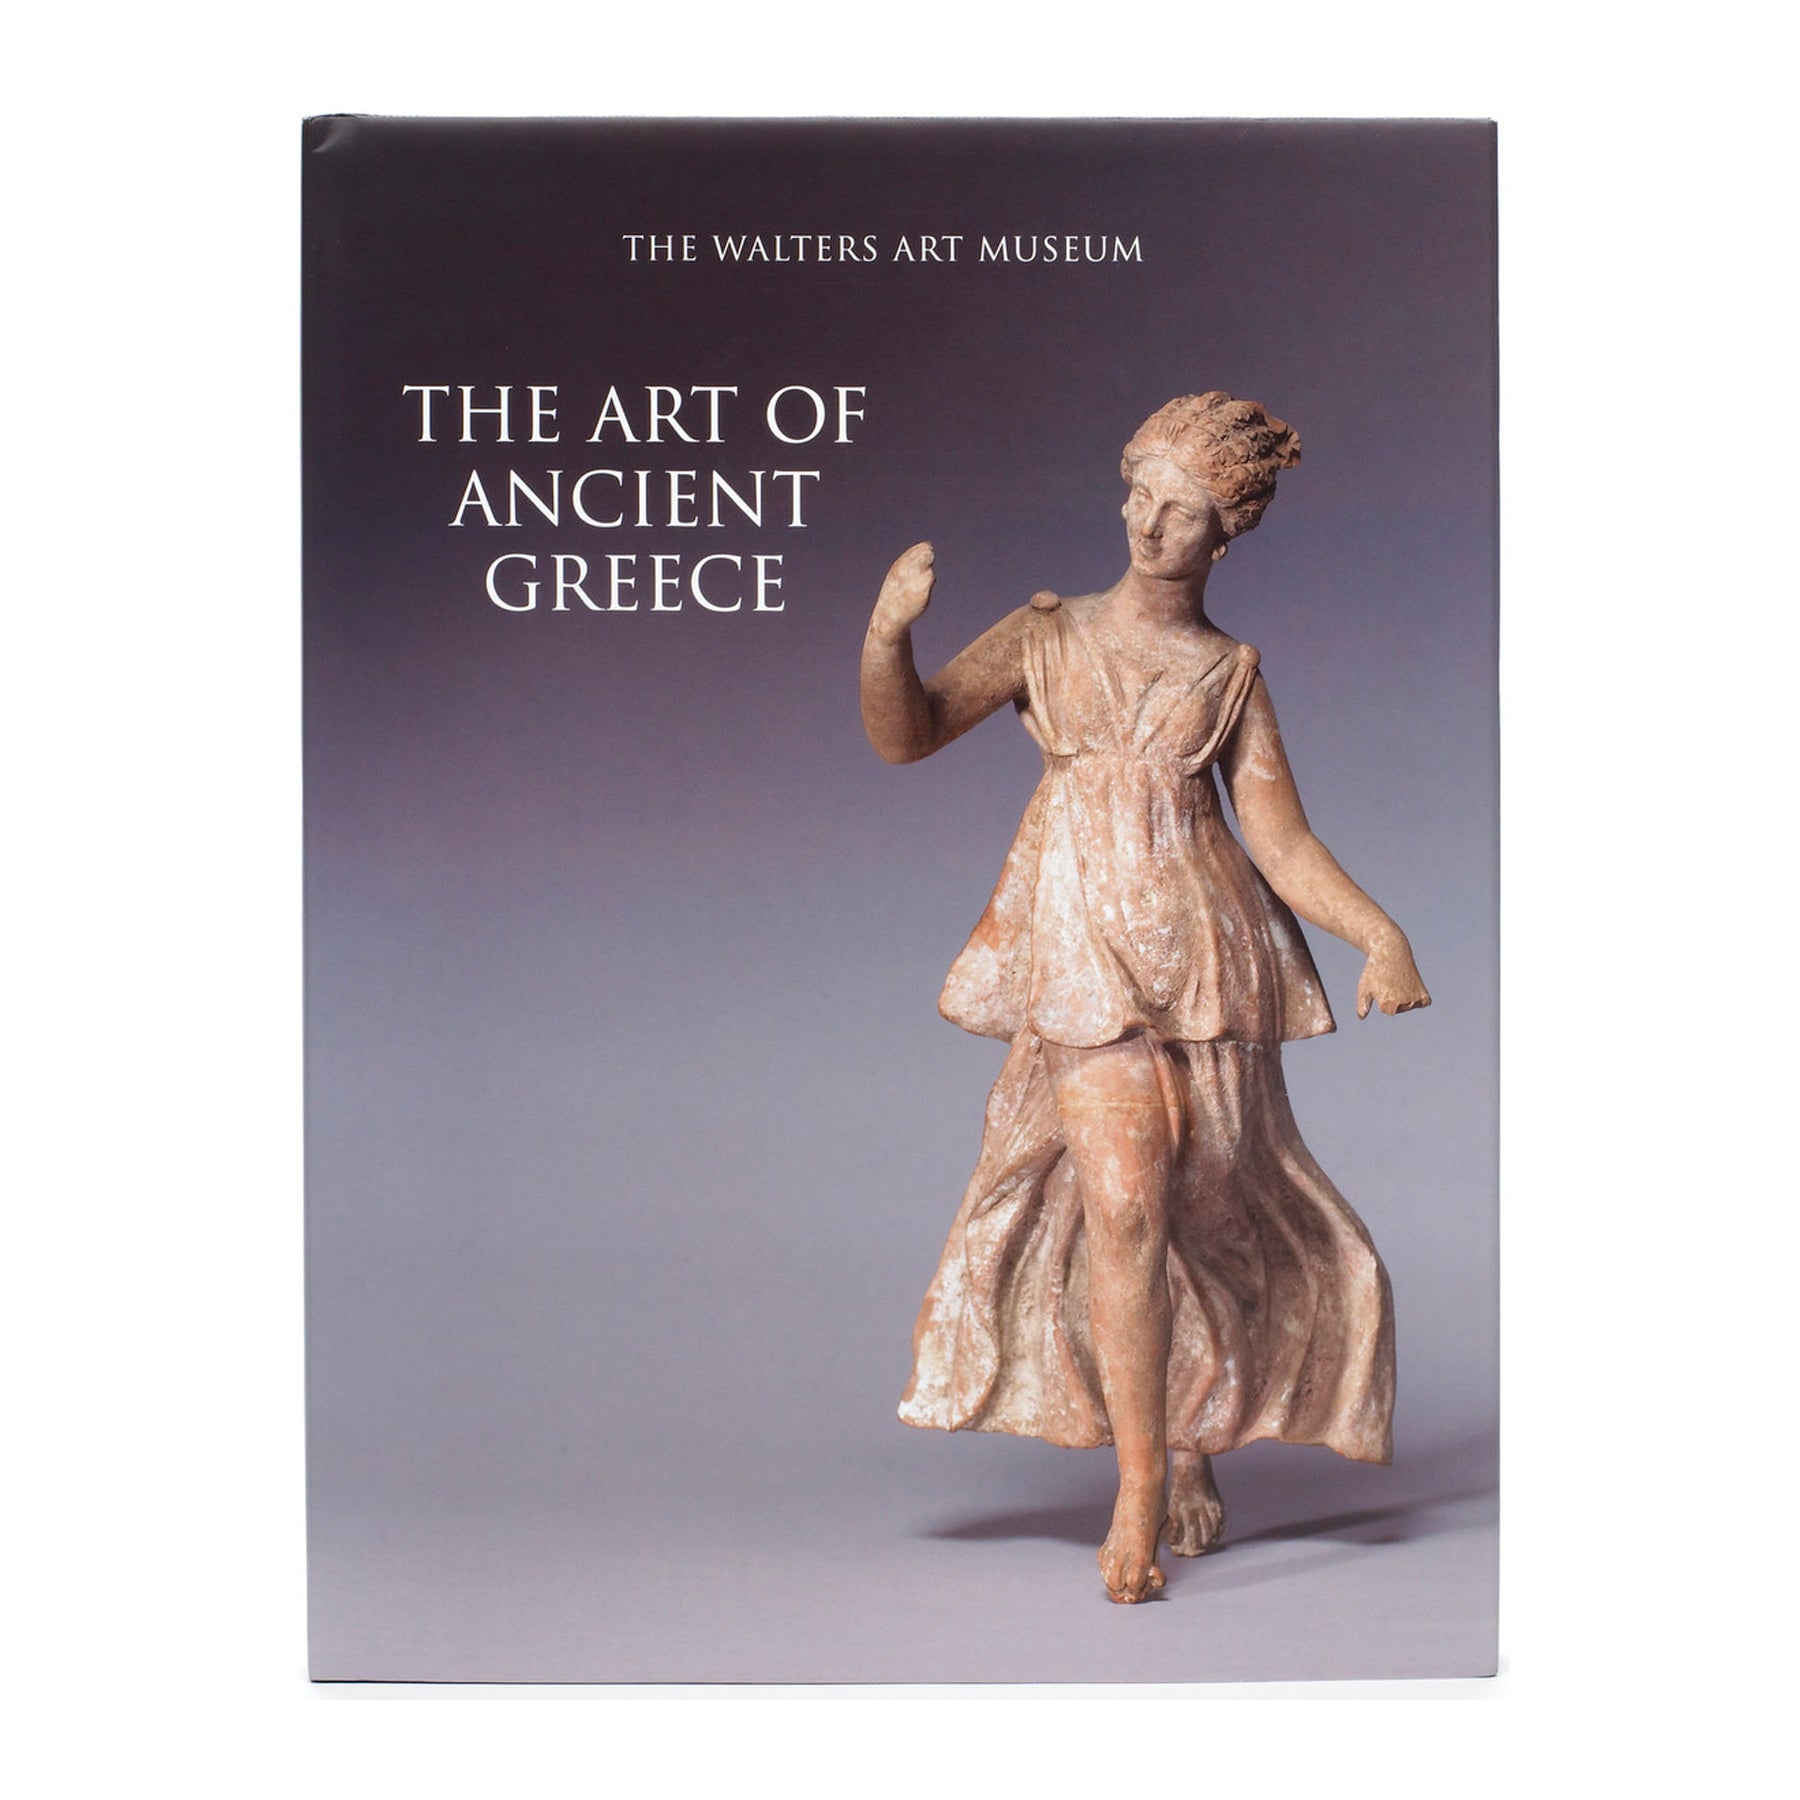 The Art of Ancient Greece: The Walters Art Museum